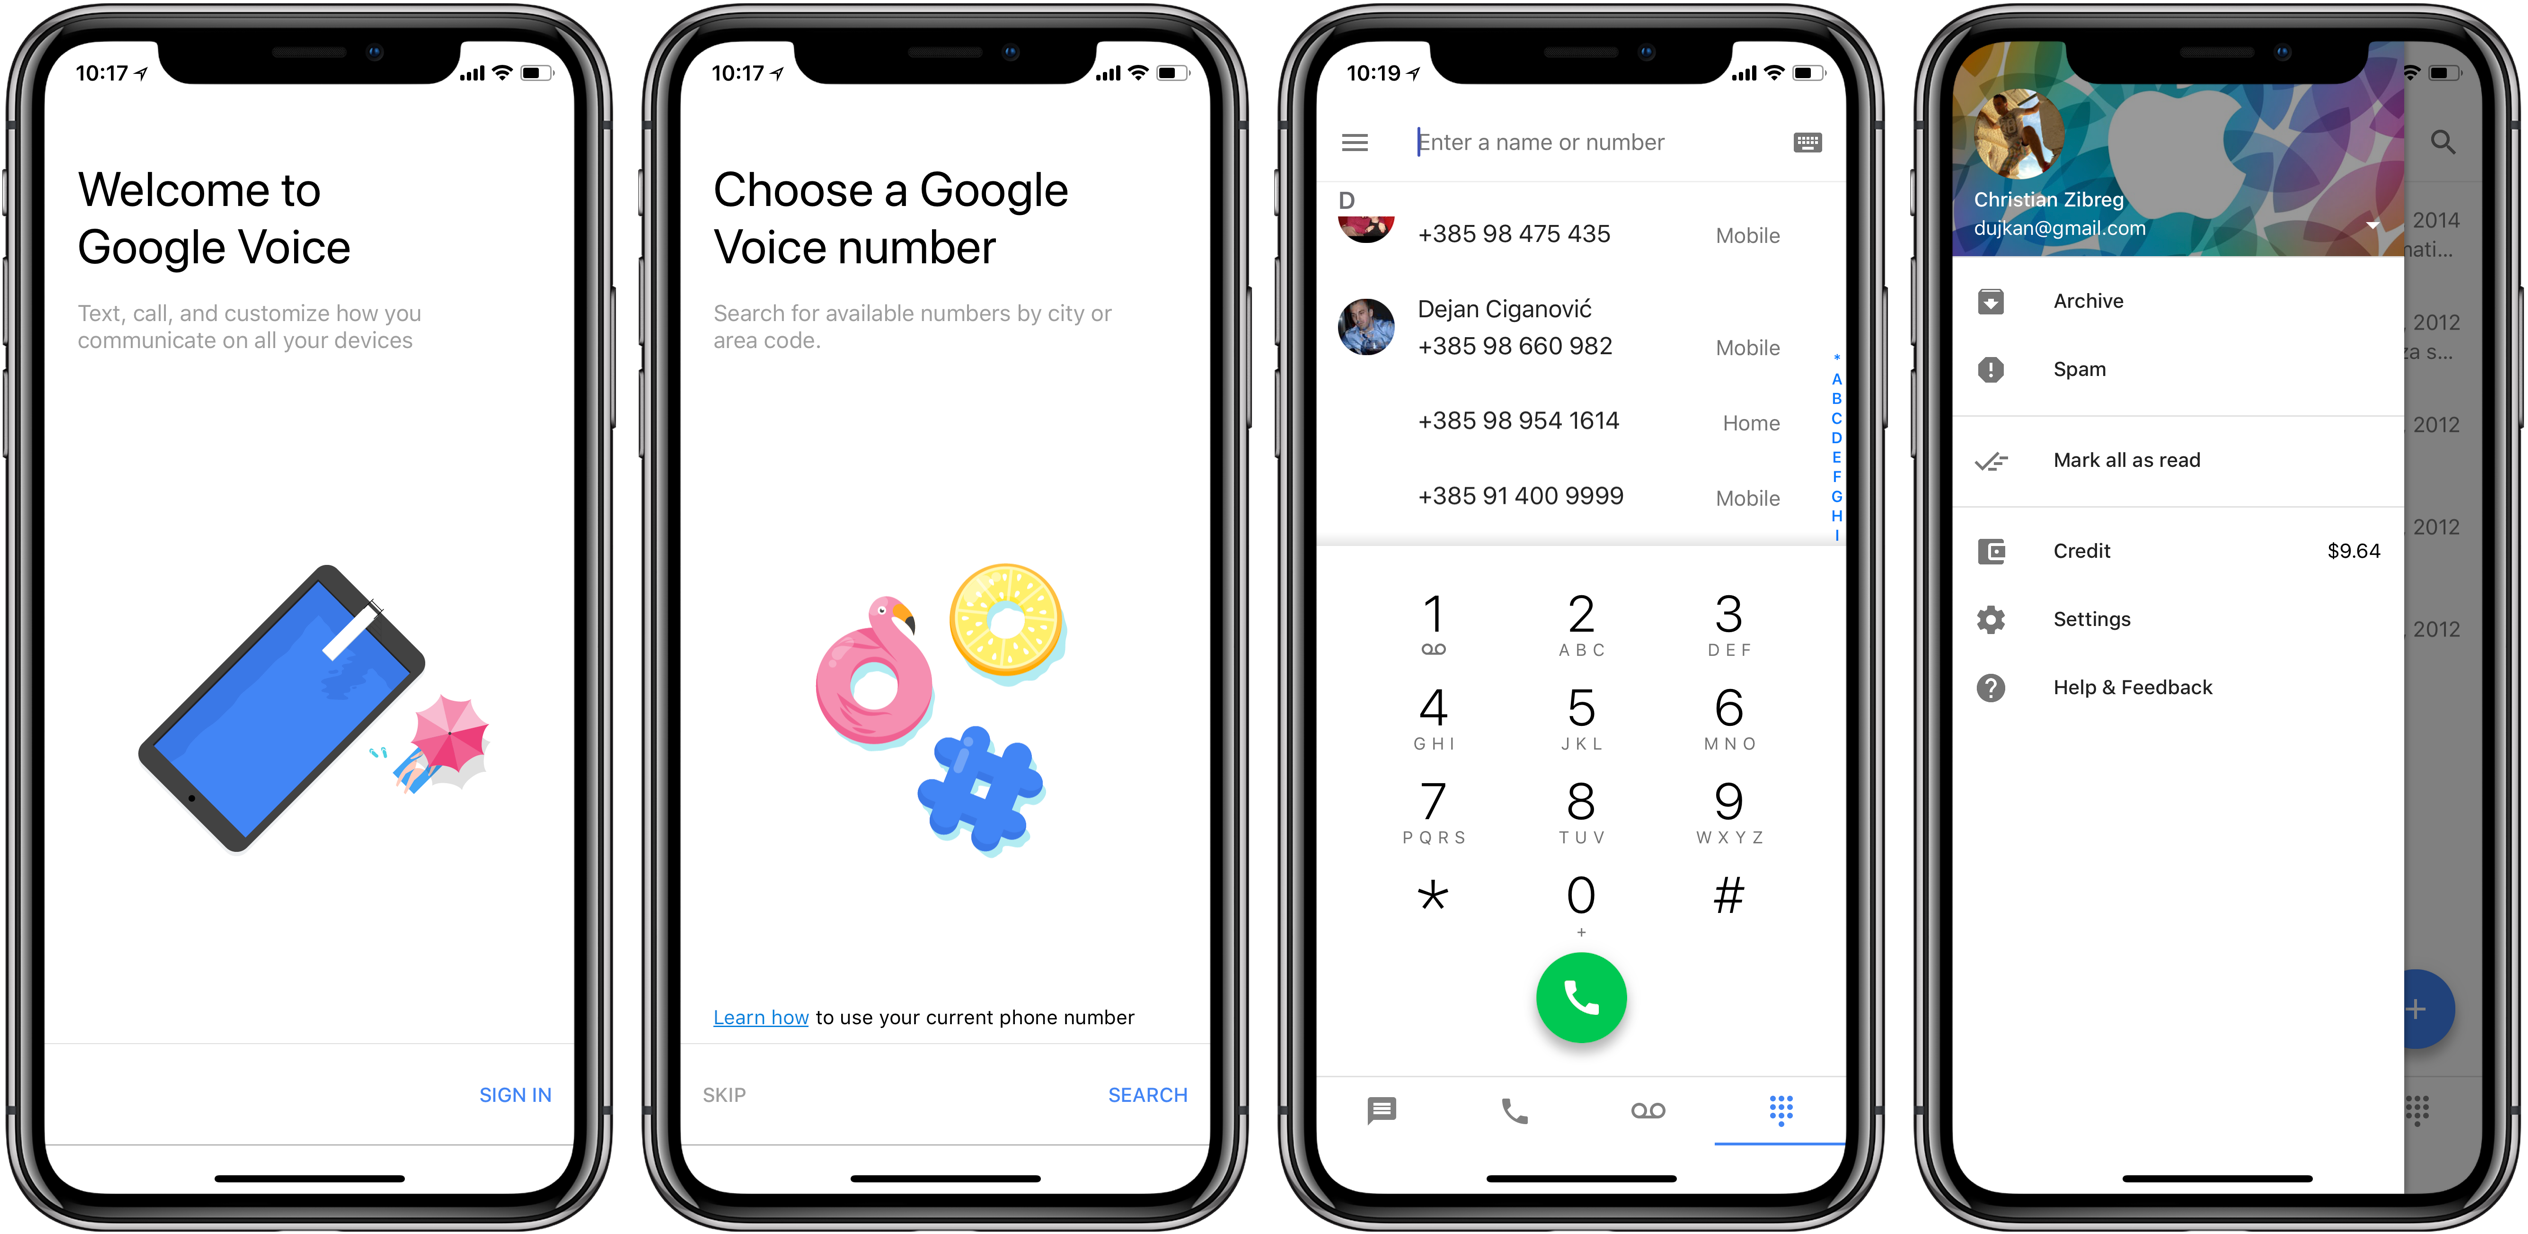 Google Voice now supports making calls, sending messages with Siri